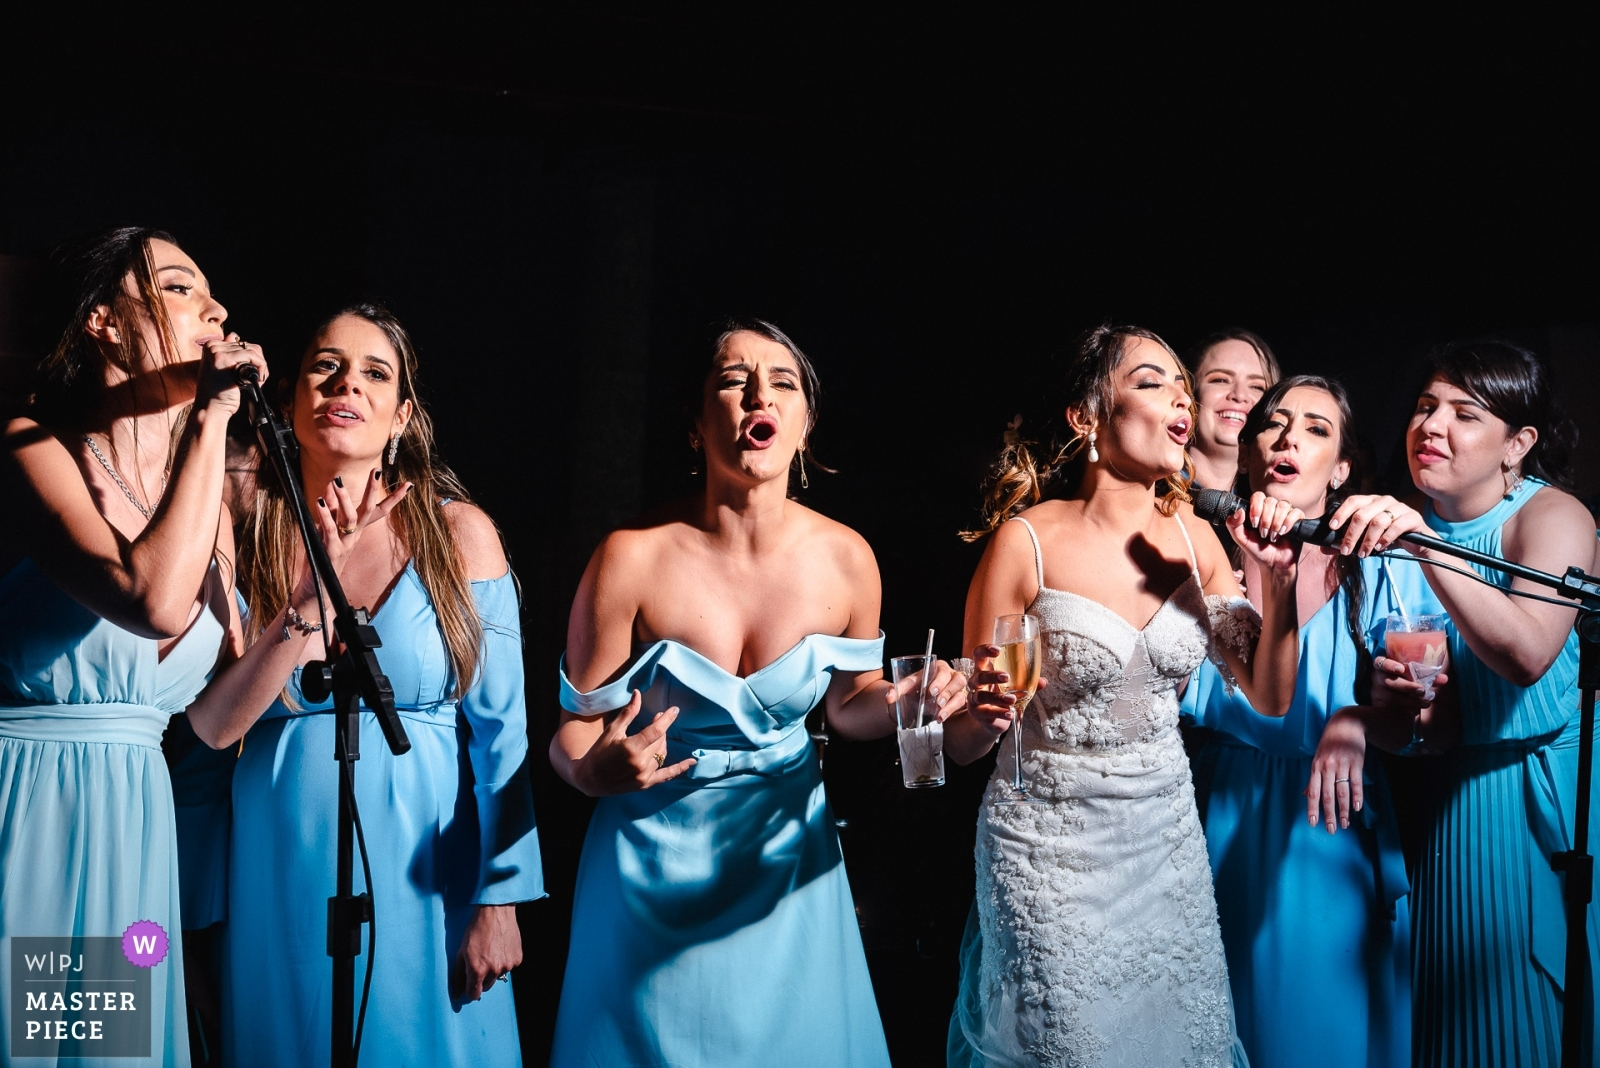 Singing in one voice. - Rio de Janeiro, Brazil Wedding Photography -  | Ilheus - BA - Brazil